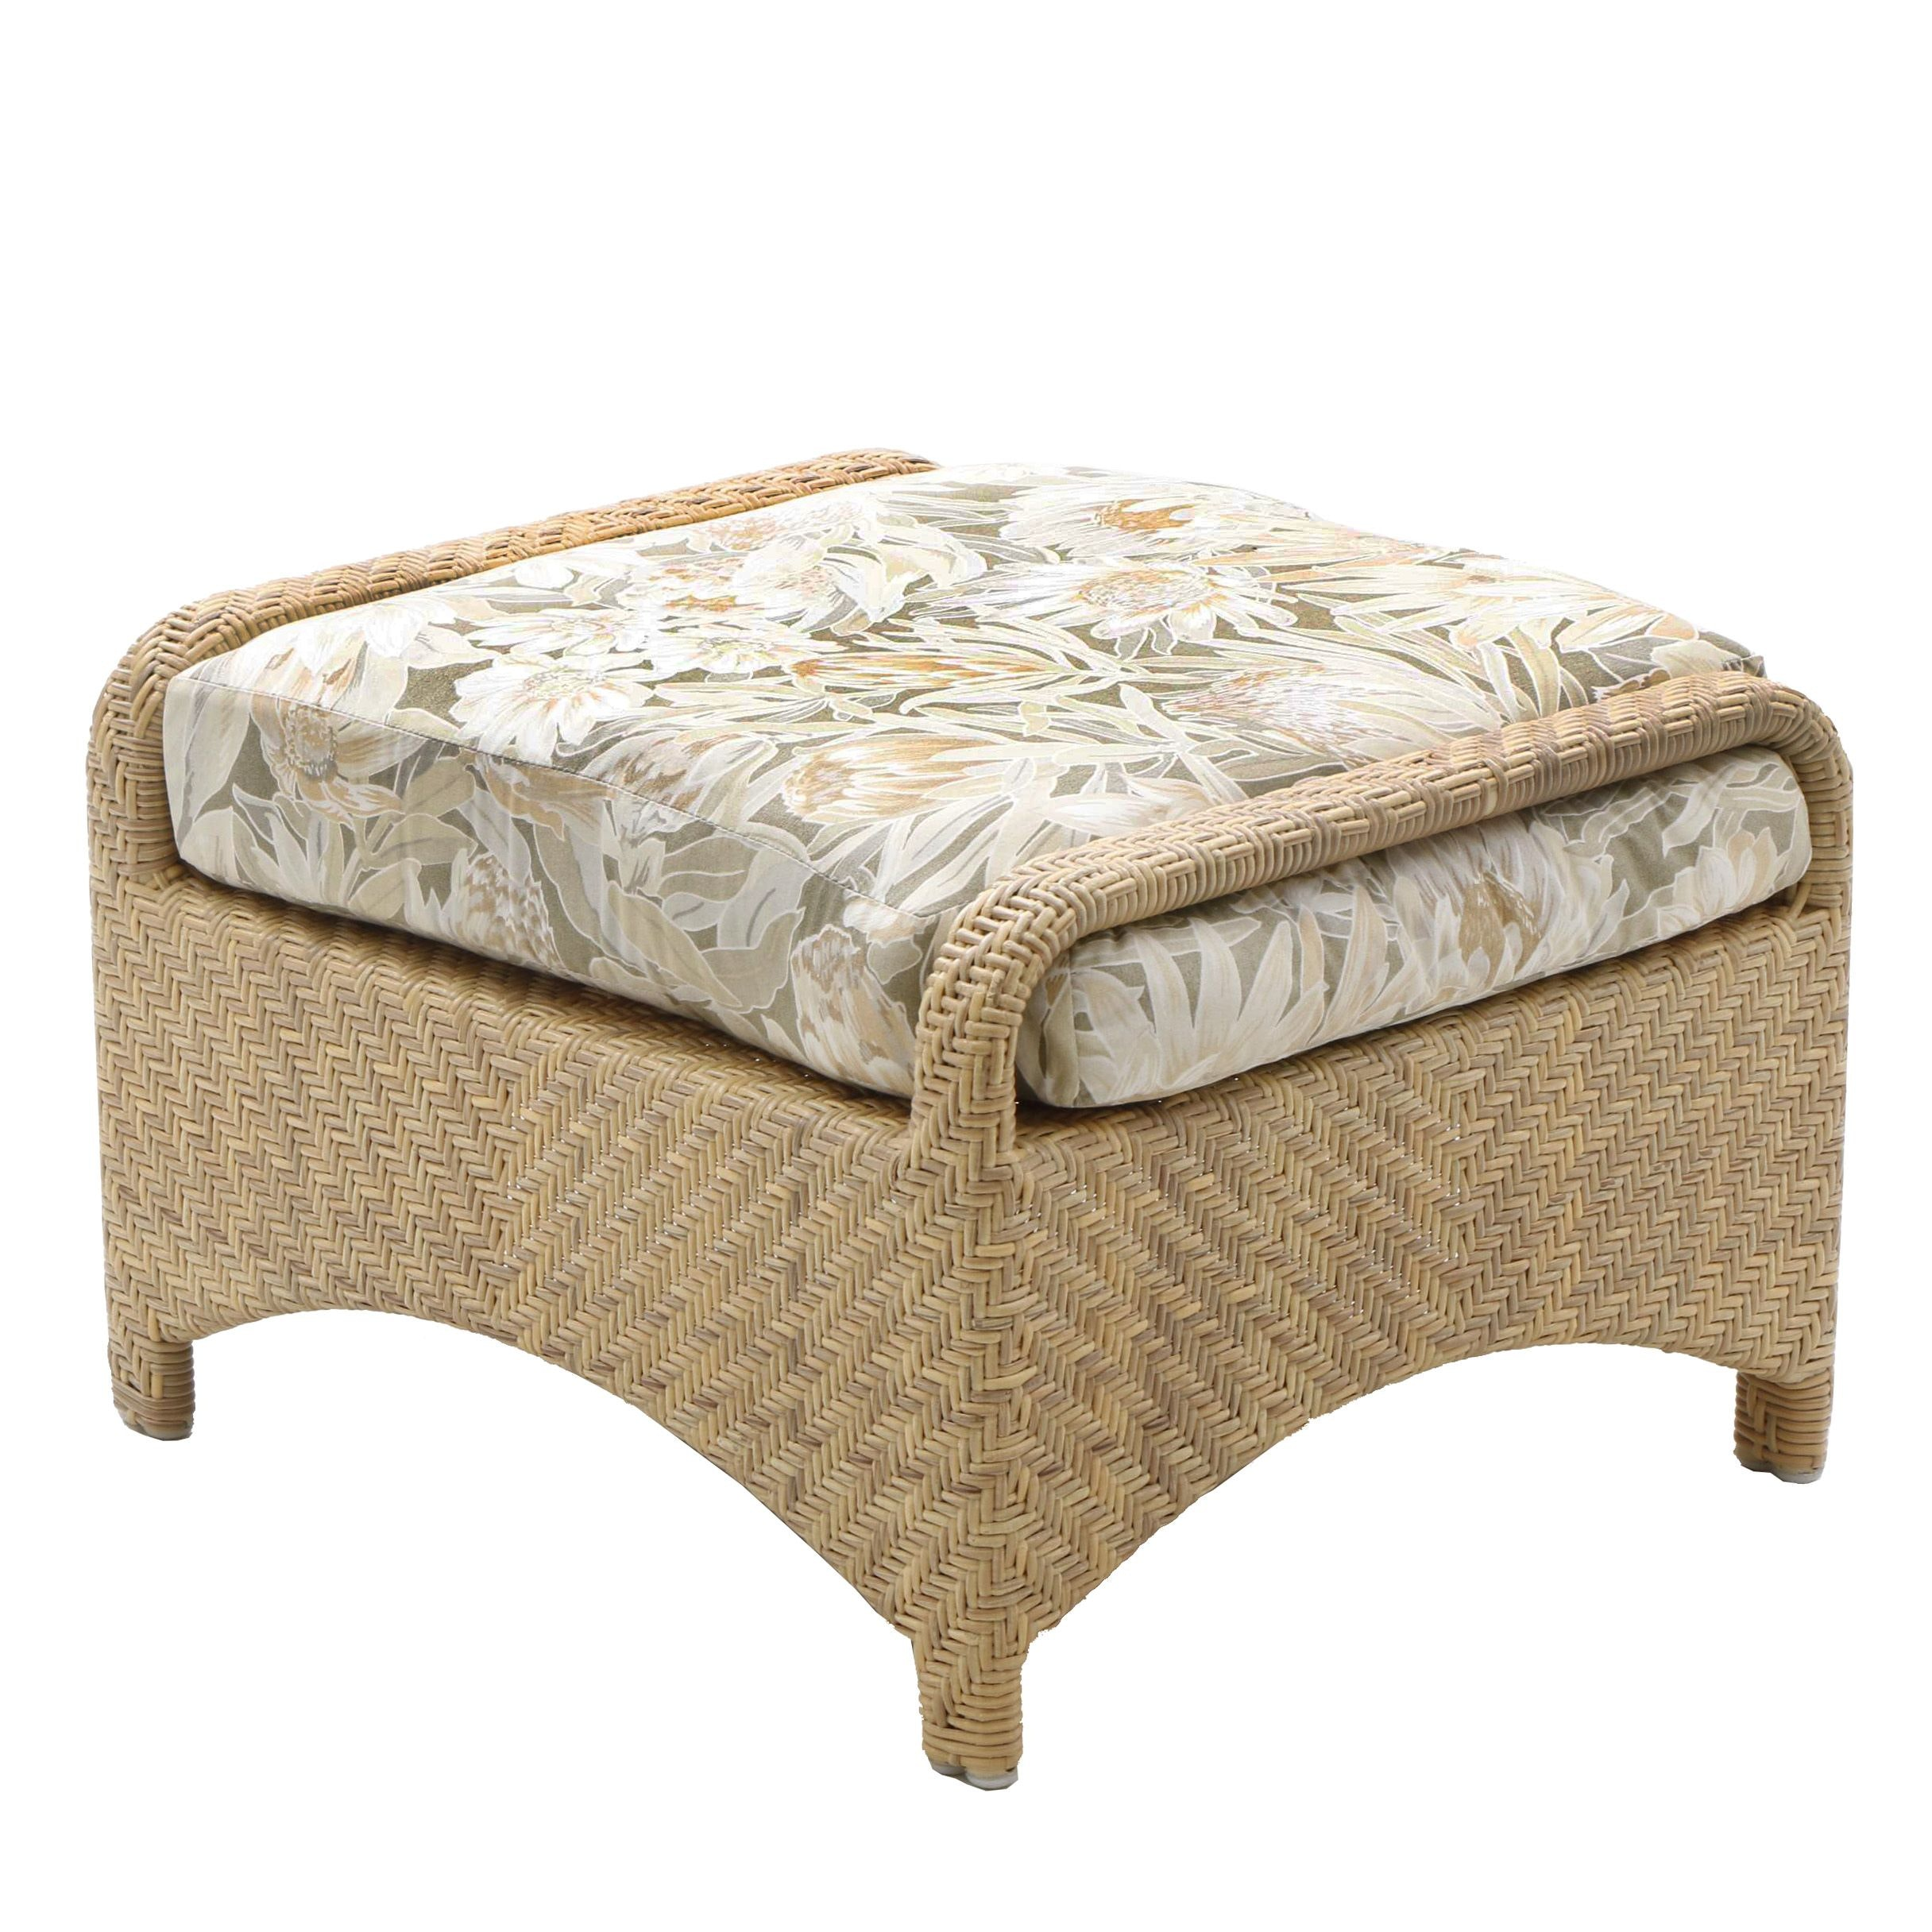 Wicker Patio Ottoman with Fitted Cushion